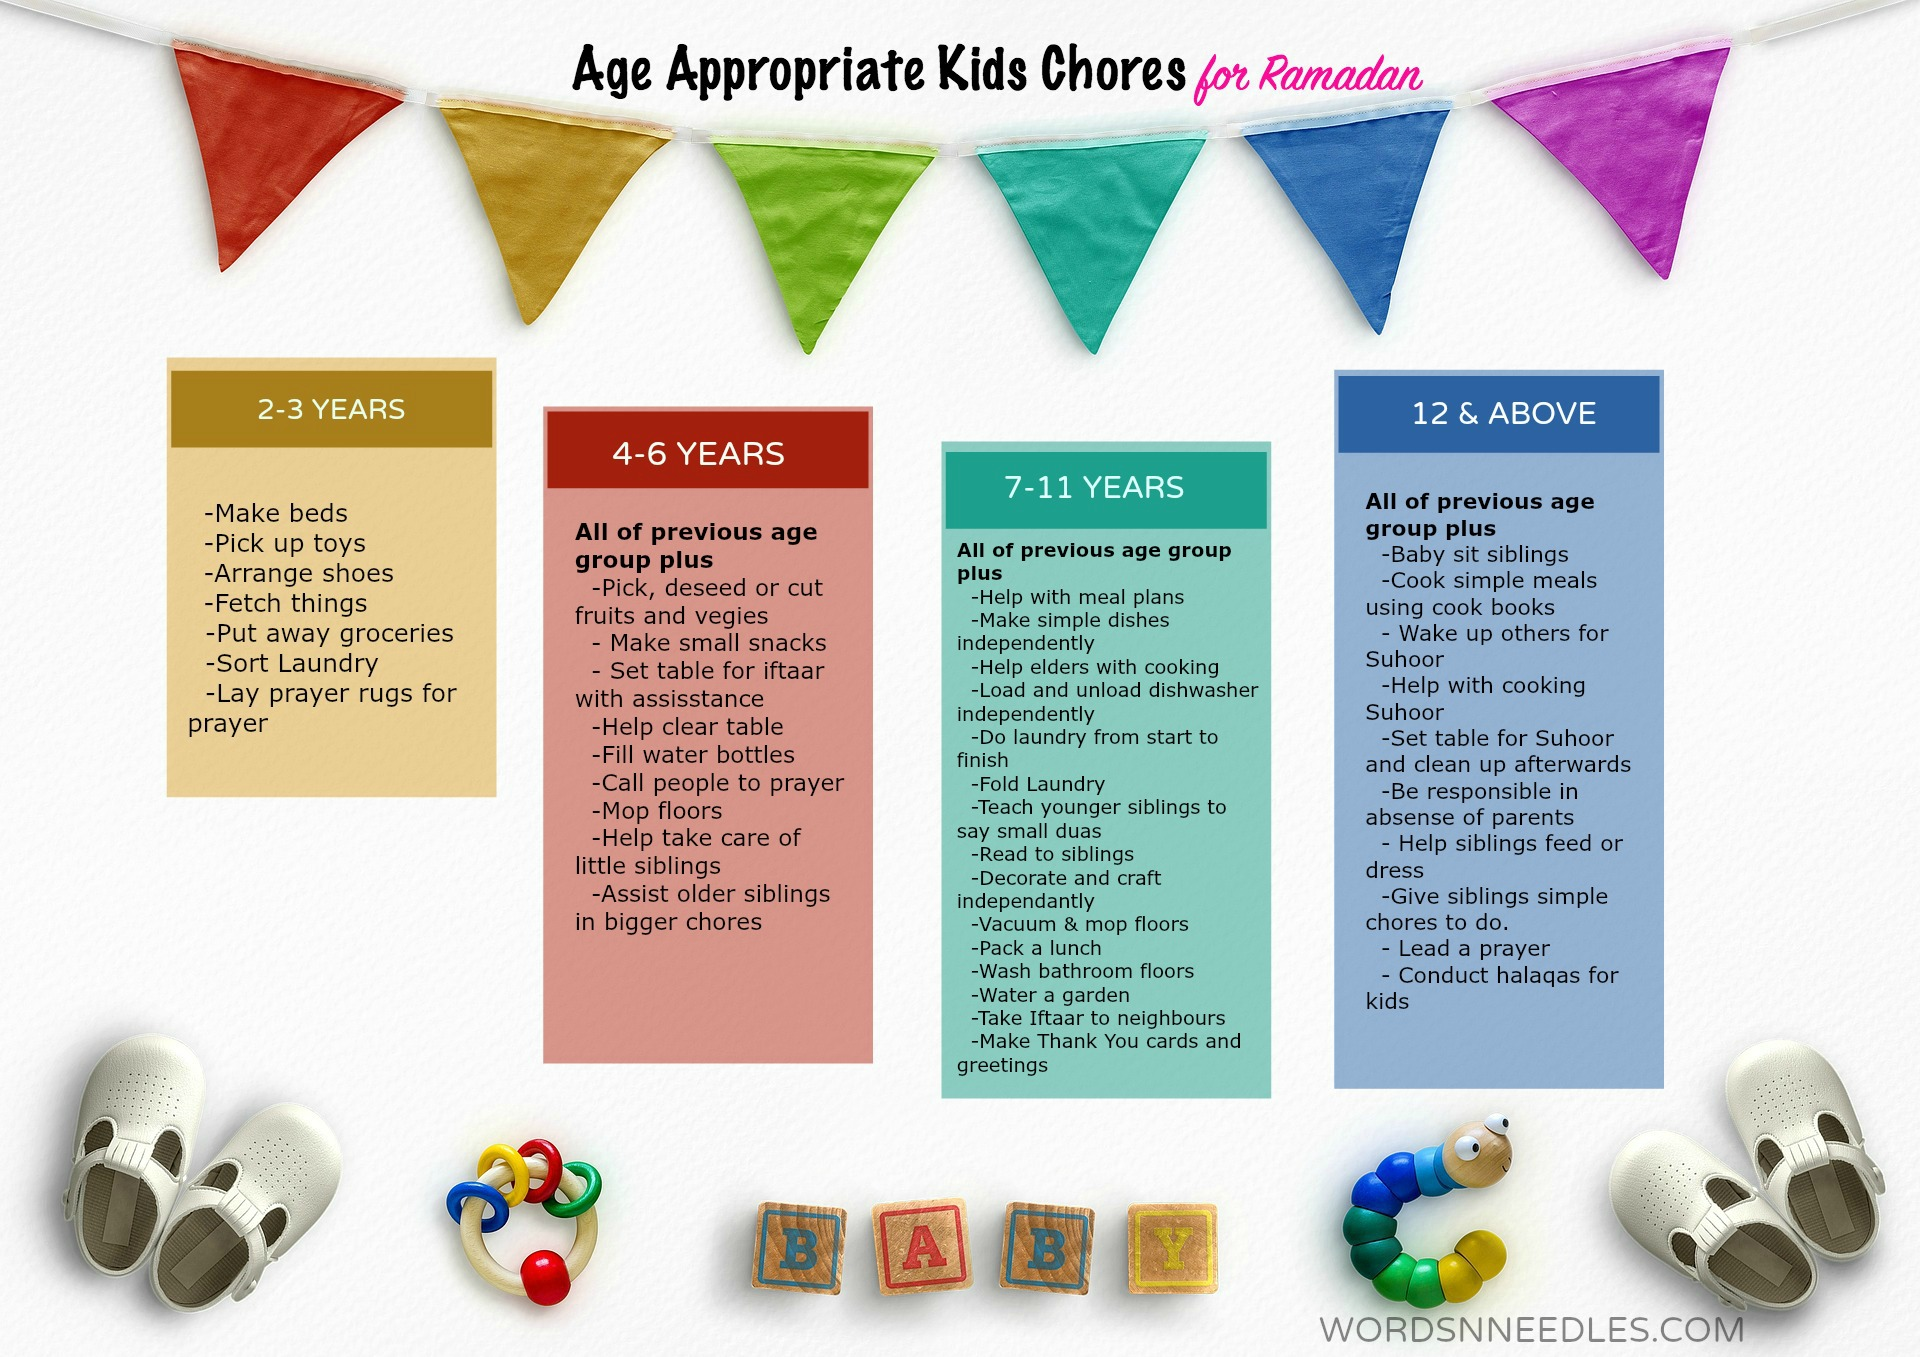 Age Appropriate Toys Chart : Age appropriate chores for kids in ramadan free printable